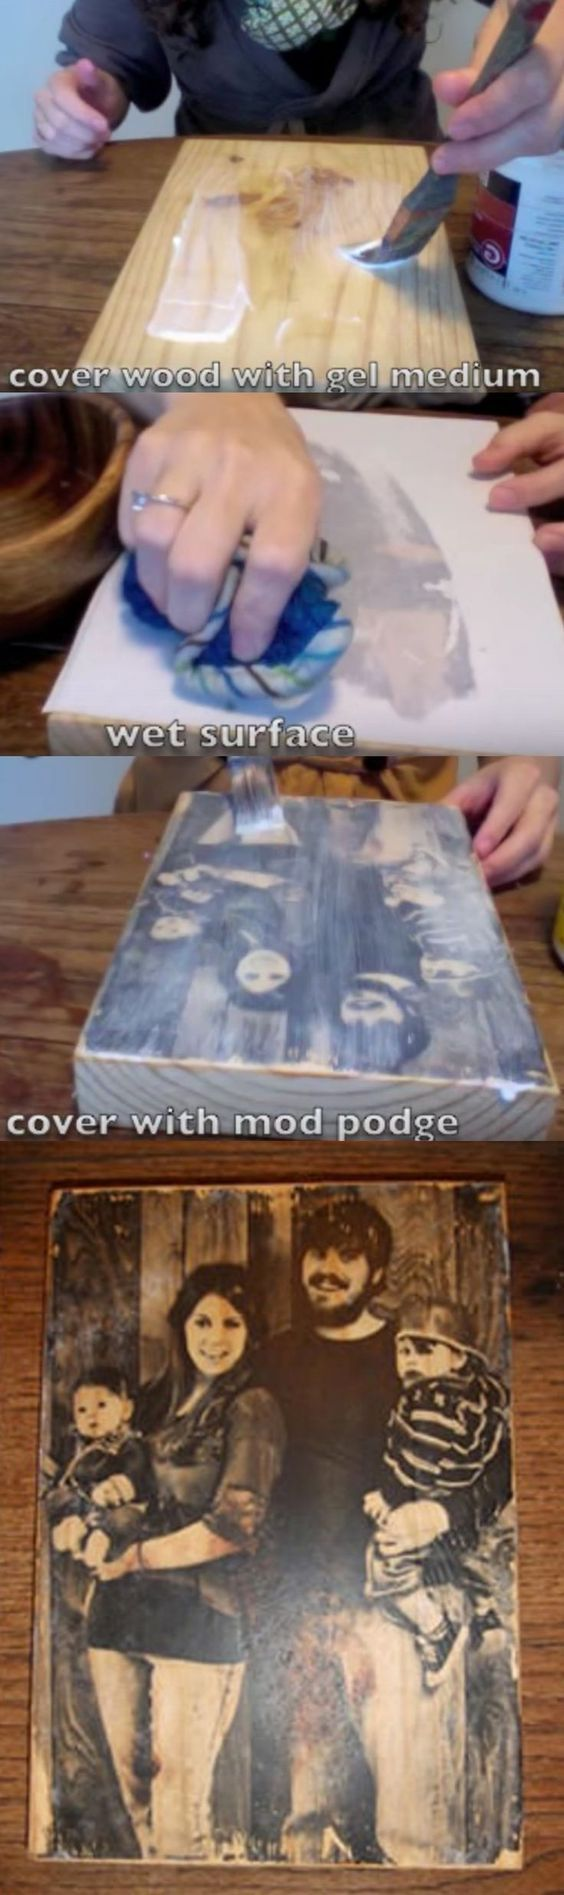 How to Transfer a Photograph Onto a Block of Wood (Video)